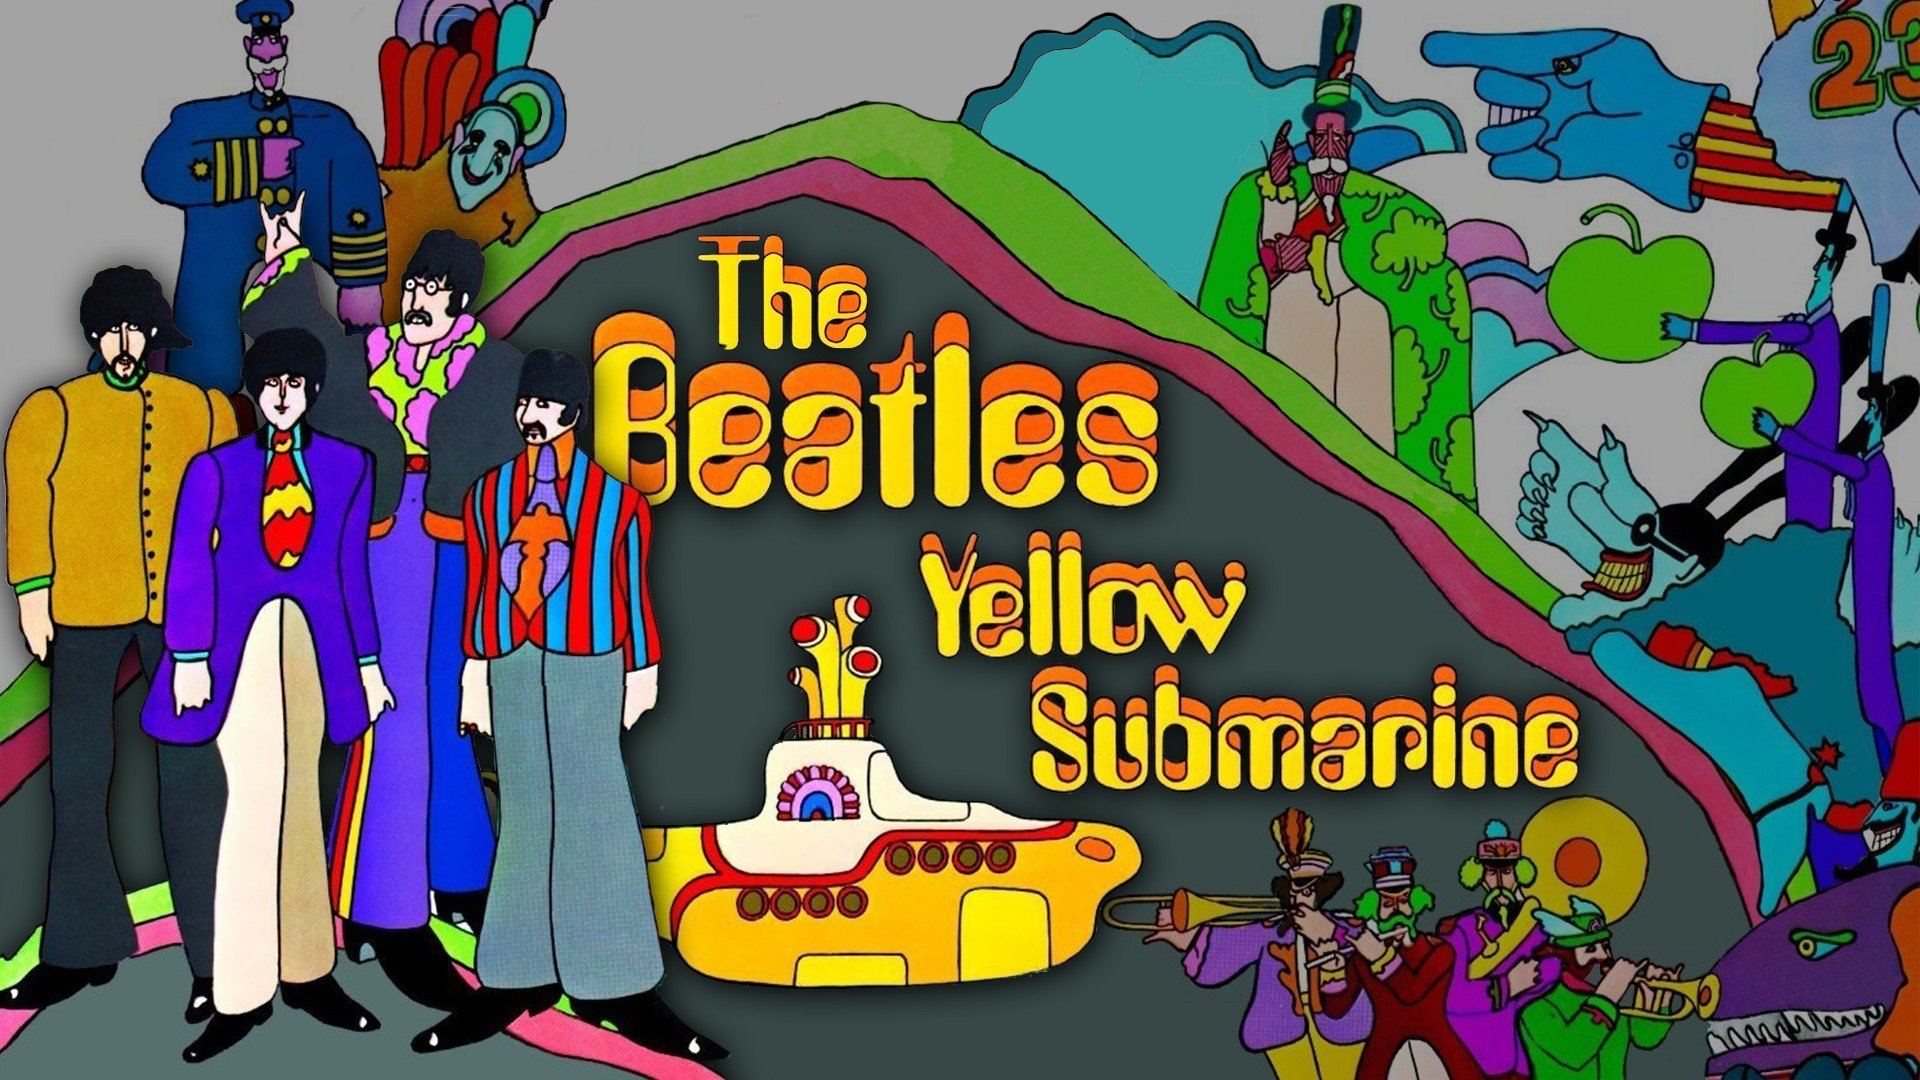 Free Download The Beatles Background Id 271297 Full Hd 1080p For Desktop